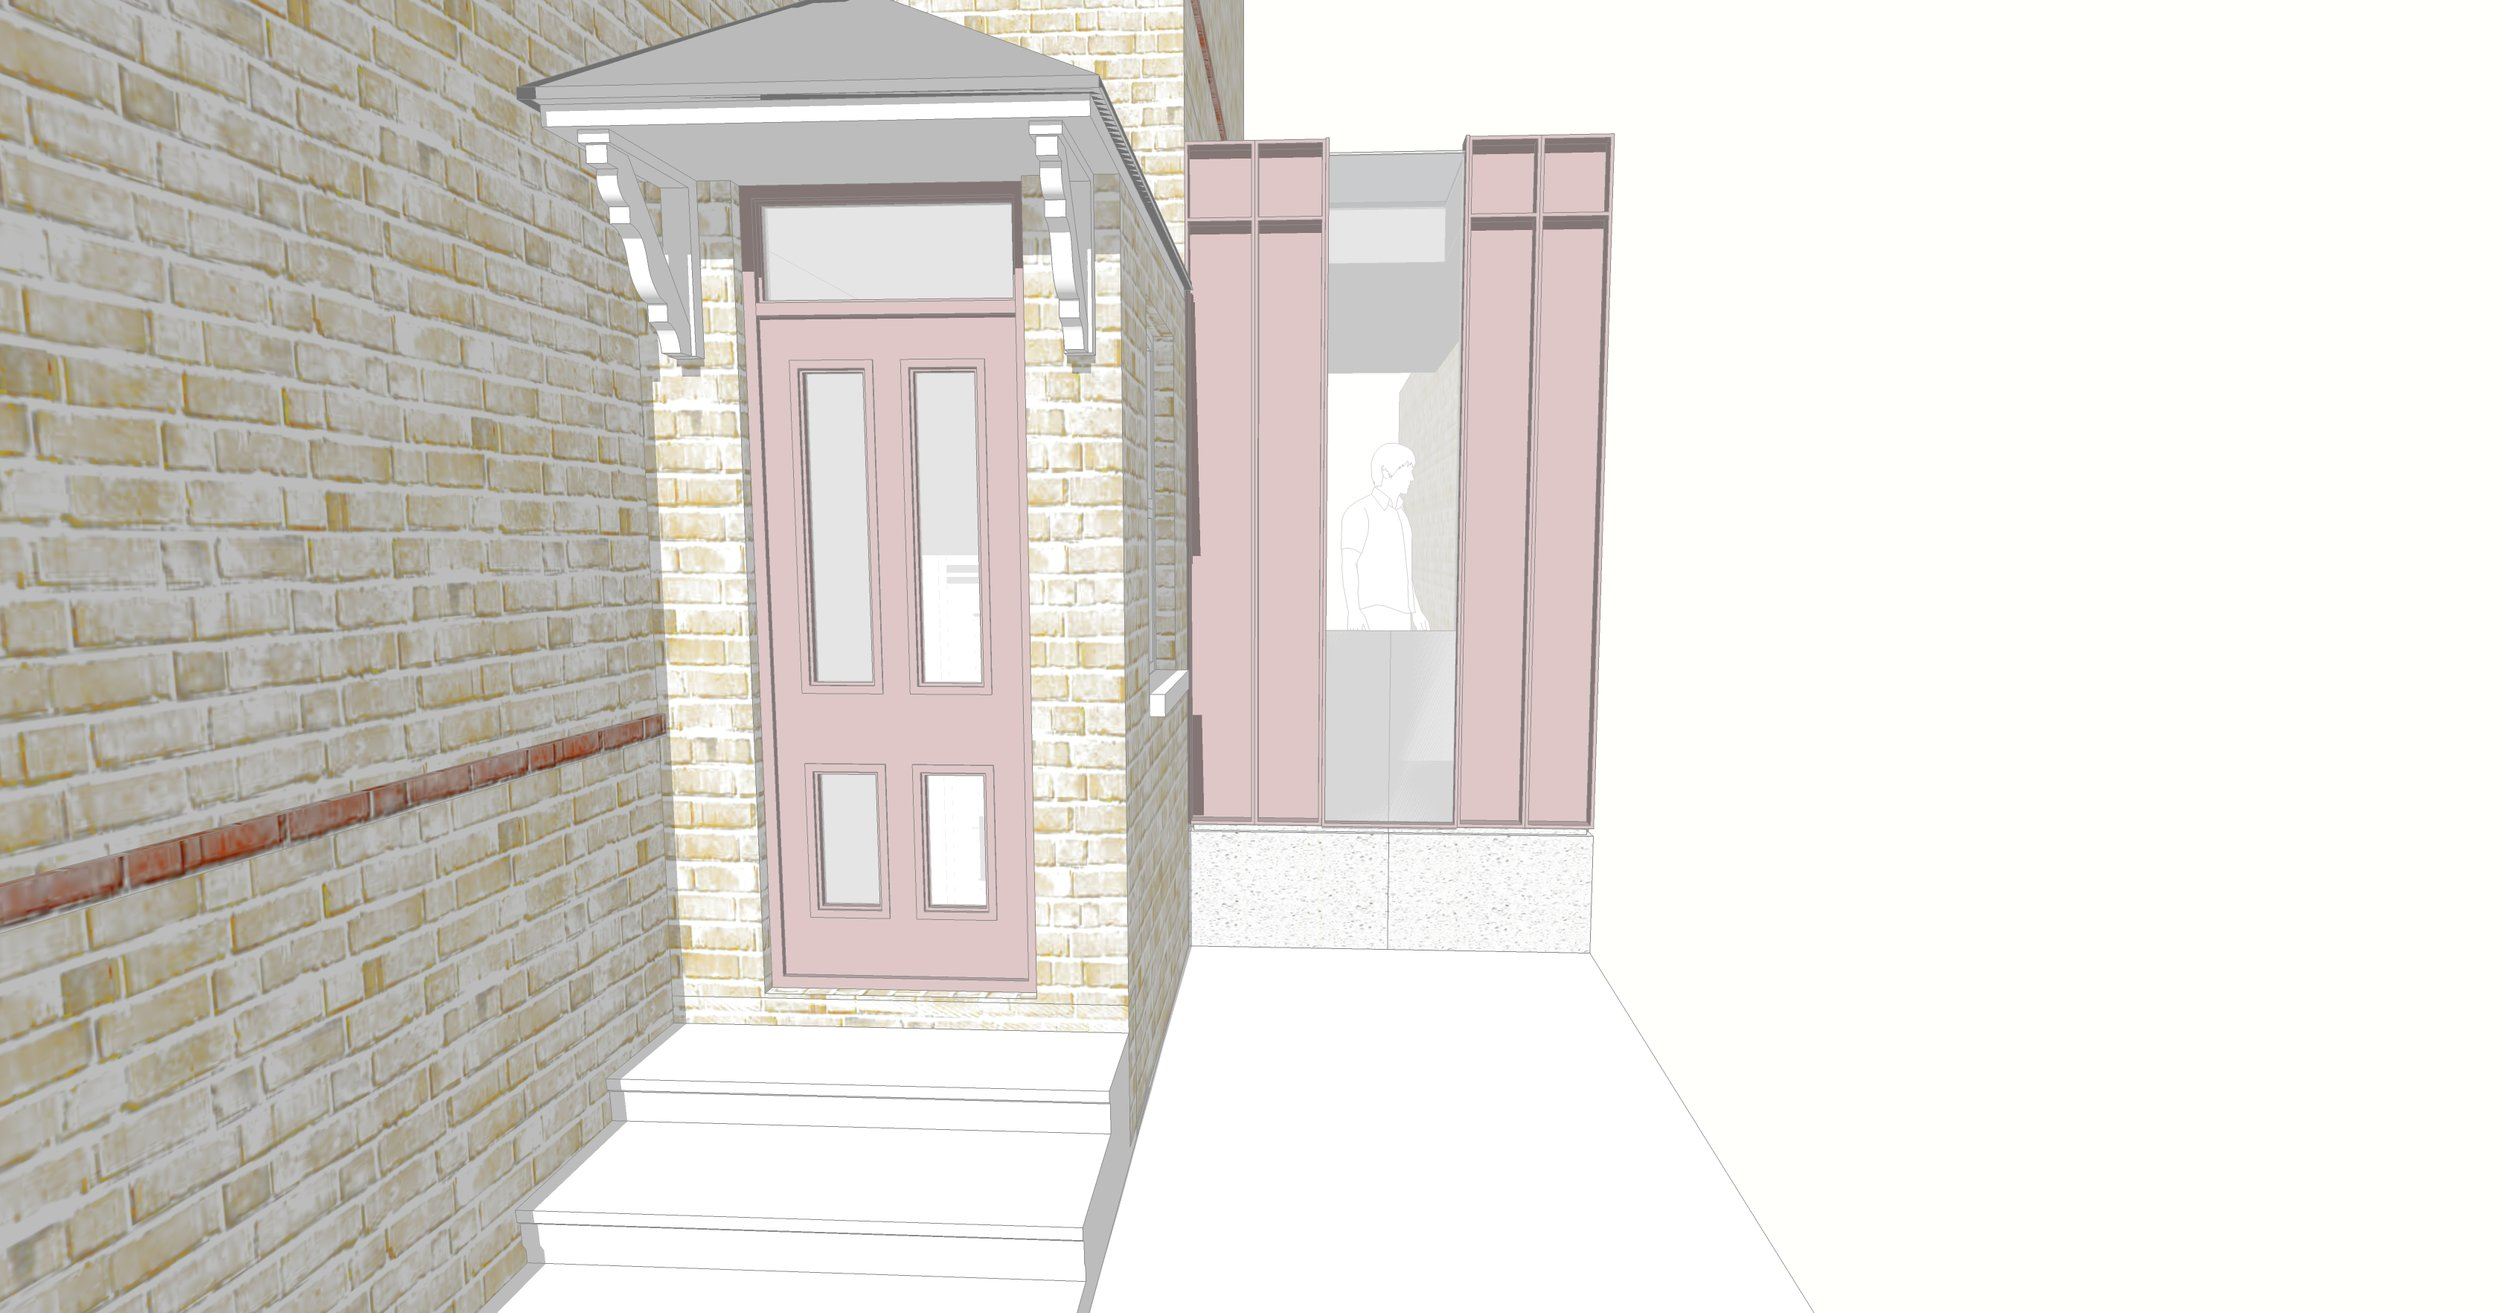 The Pink House extension planning permission